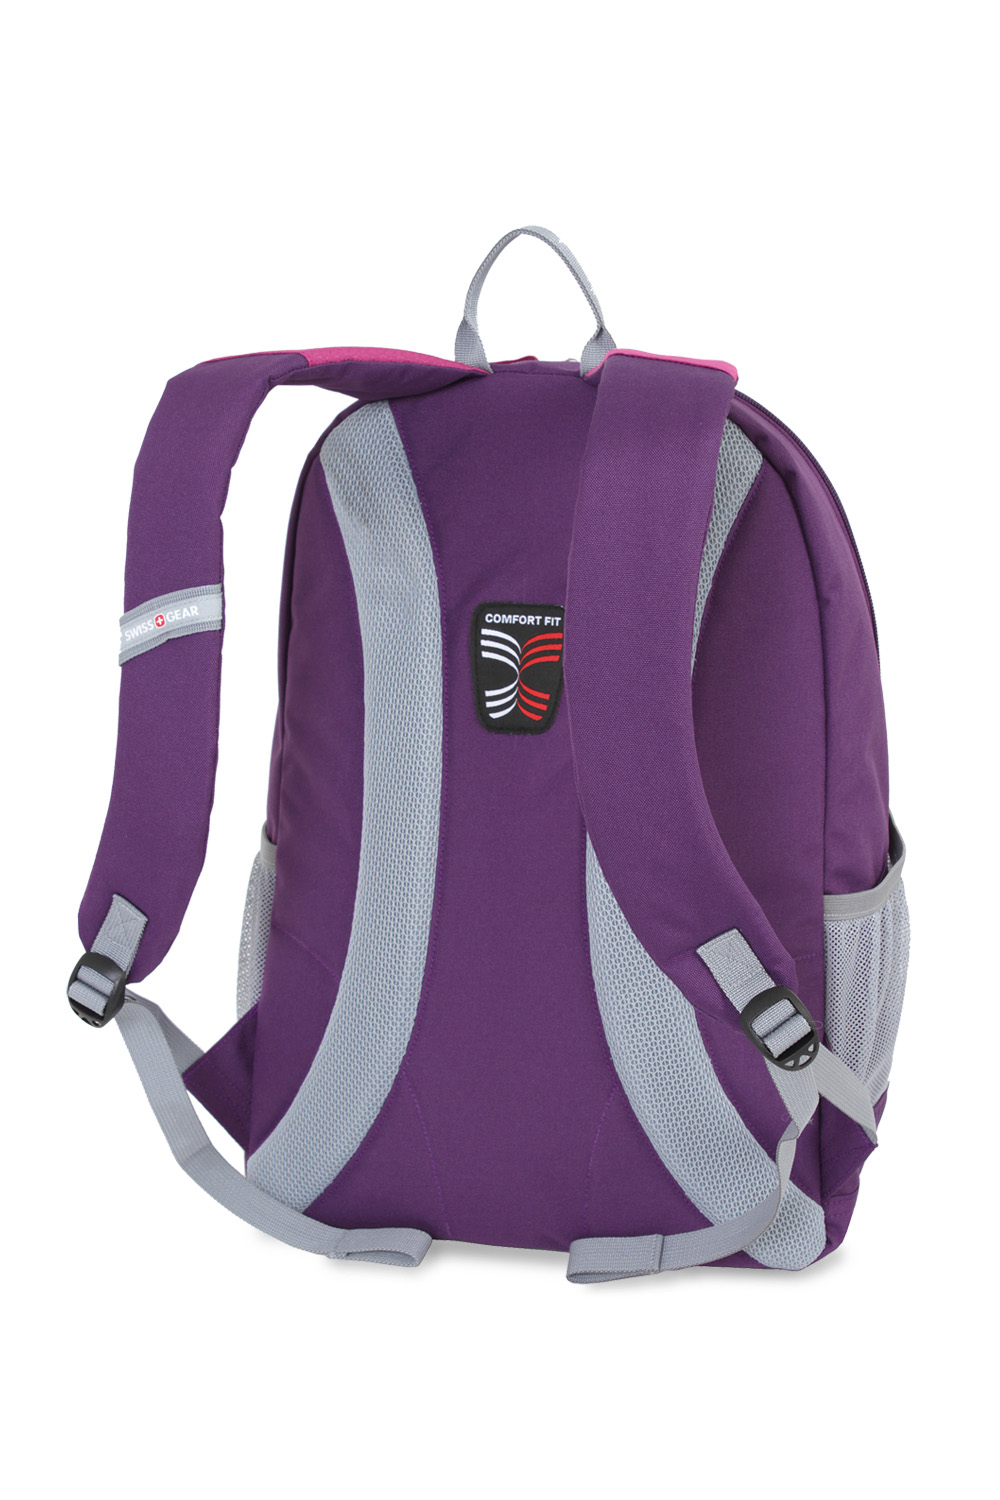 SWISSGEAR 6610 Backpack - Purple/Pink